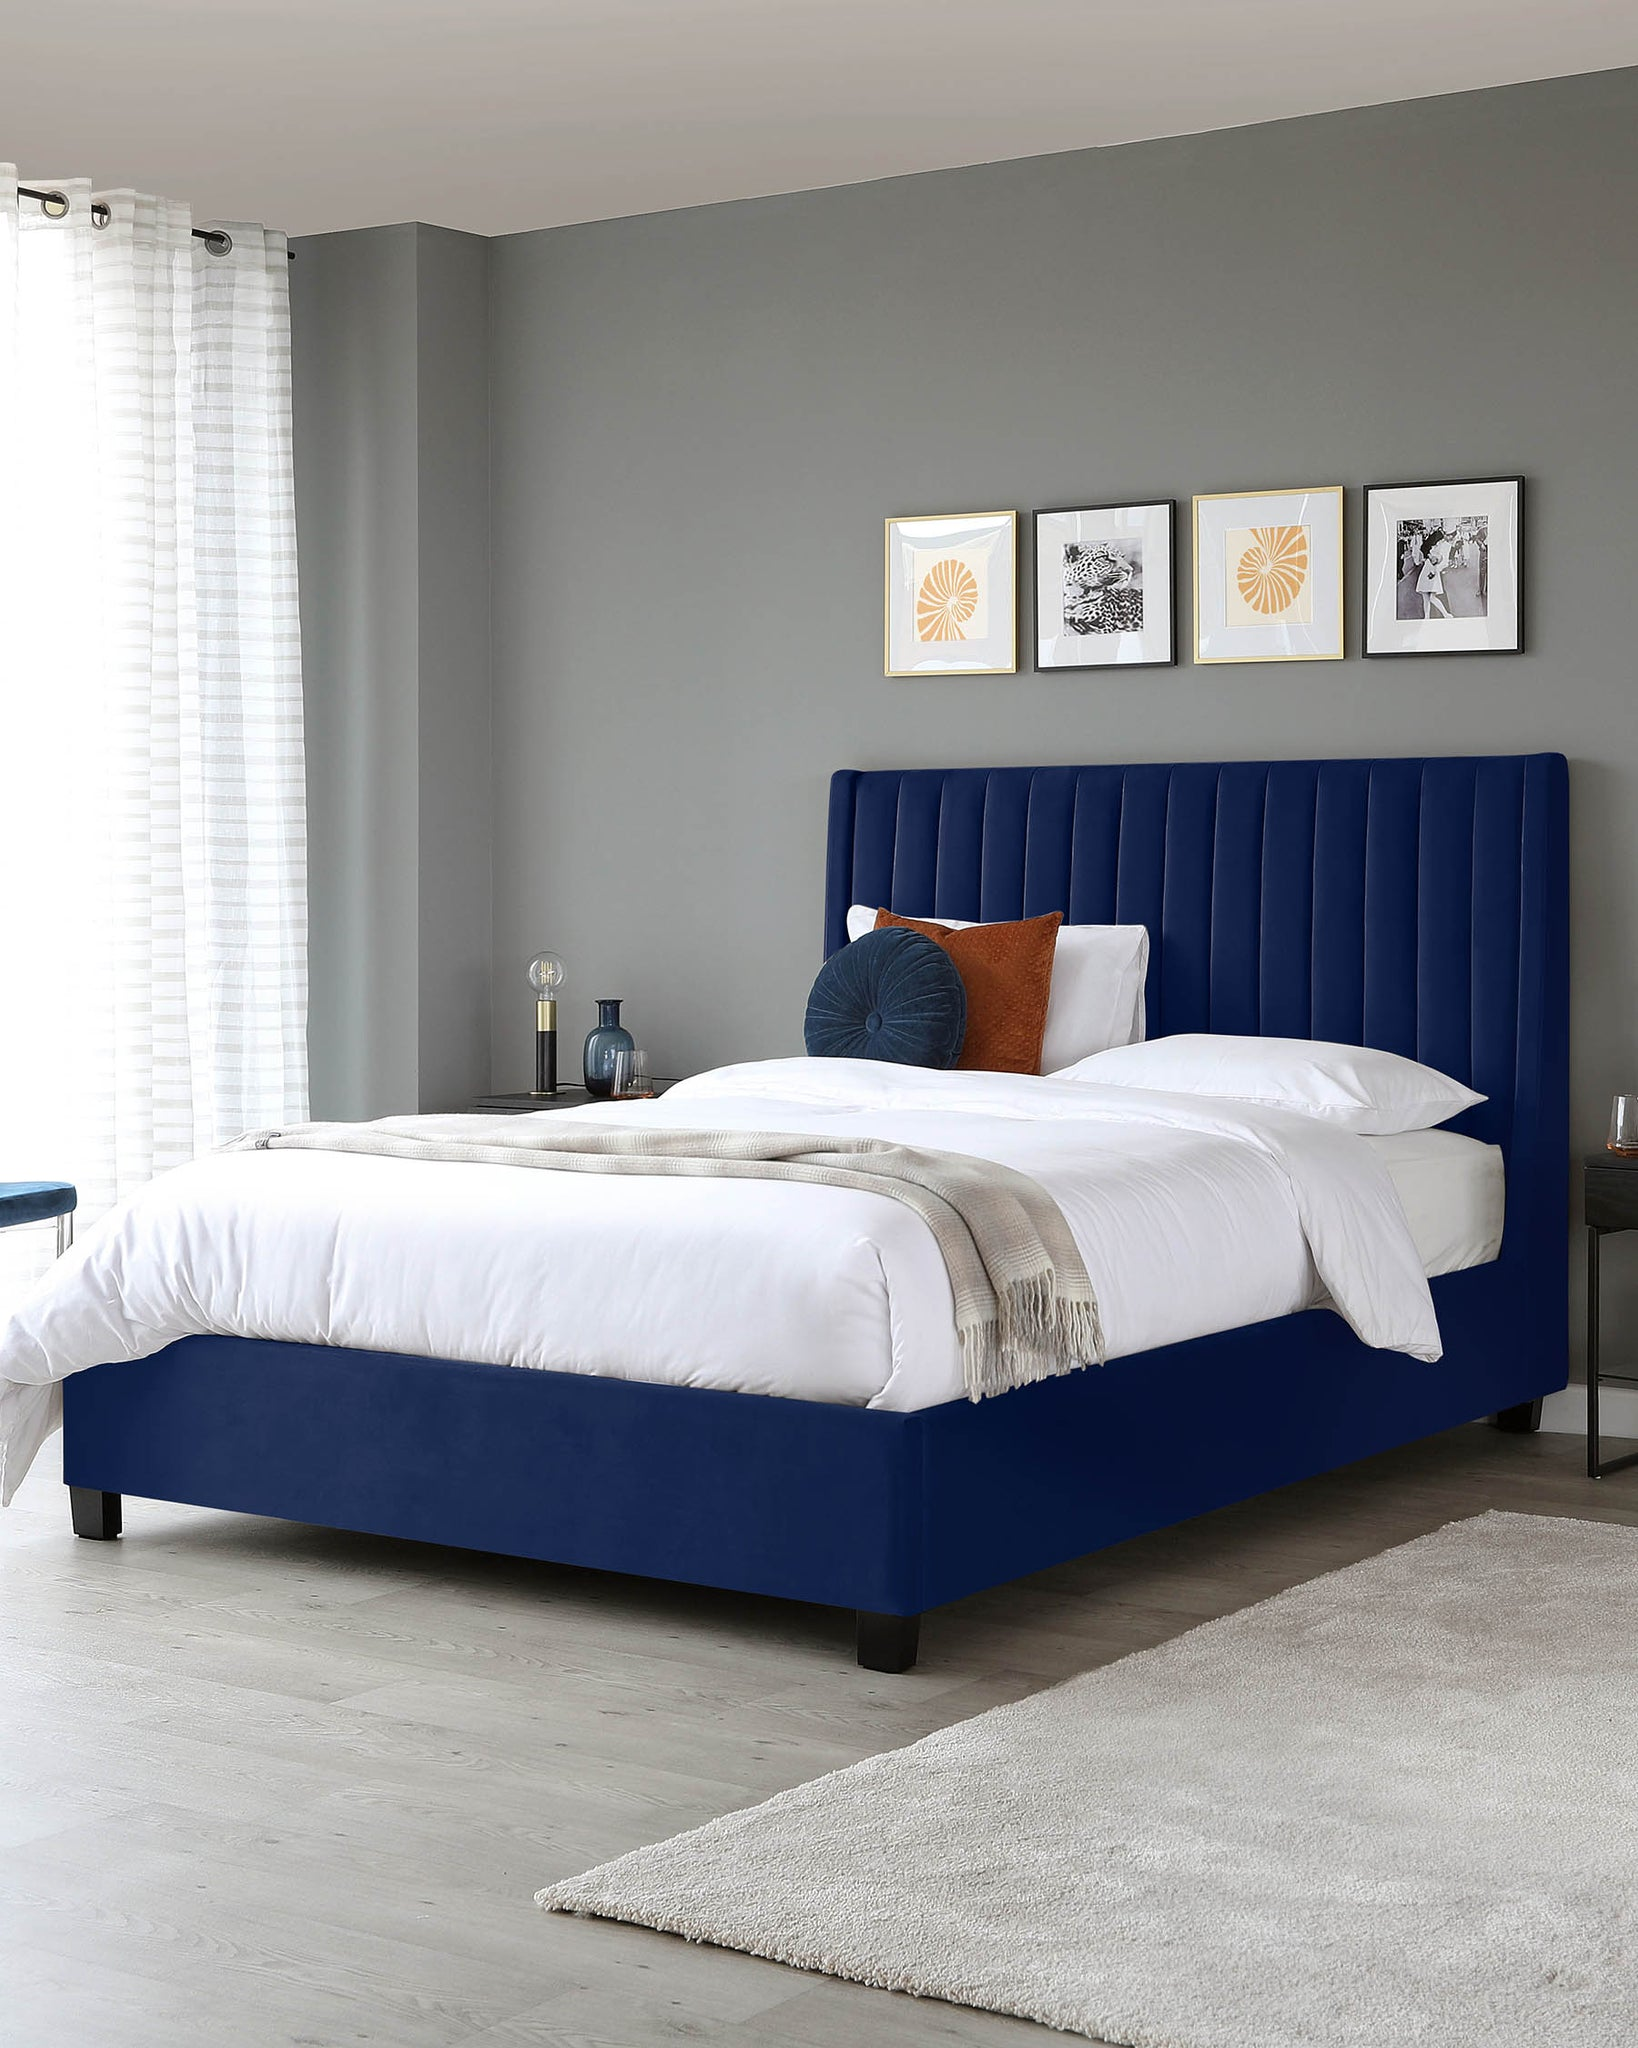 Amalfi Navy Velvet King Size Bed With Storage